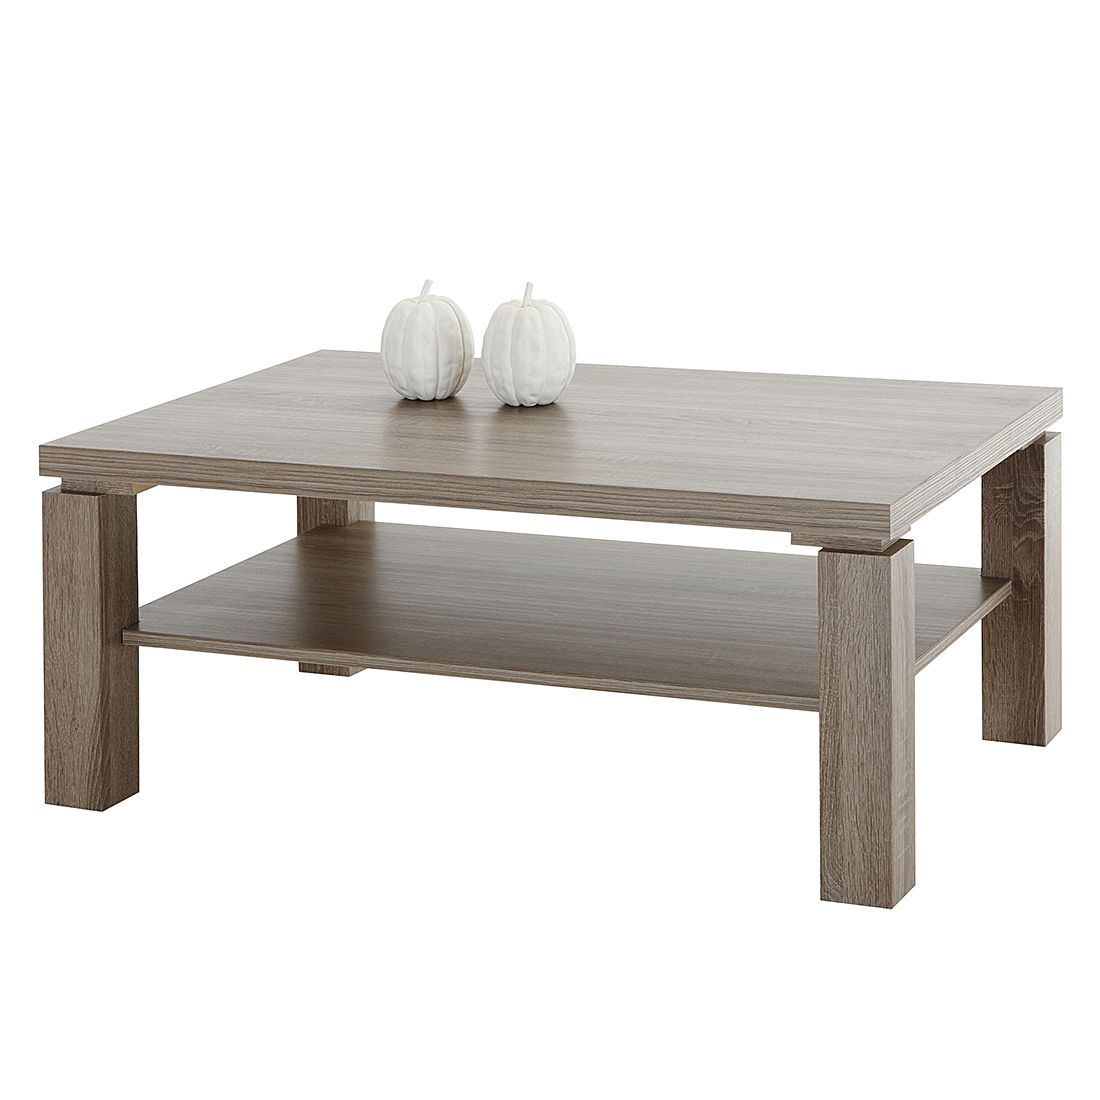 Table basse Ethan - Imitation chêne truffier, Home Design